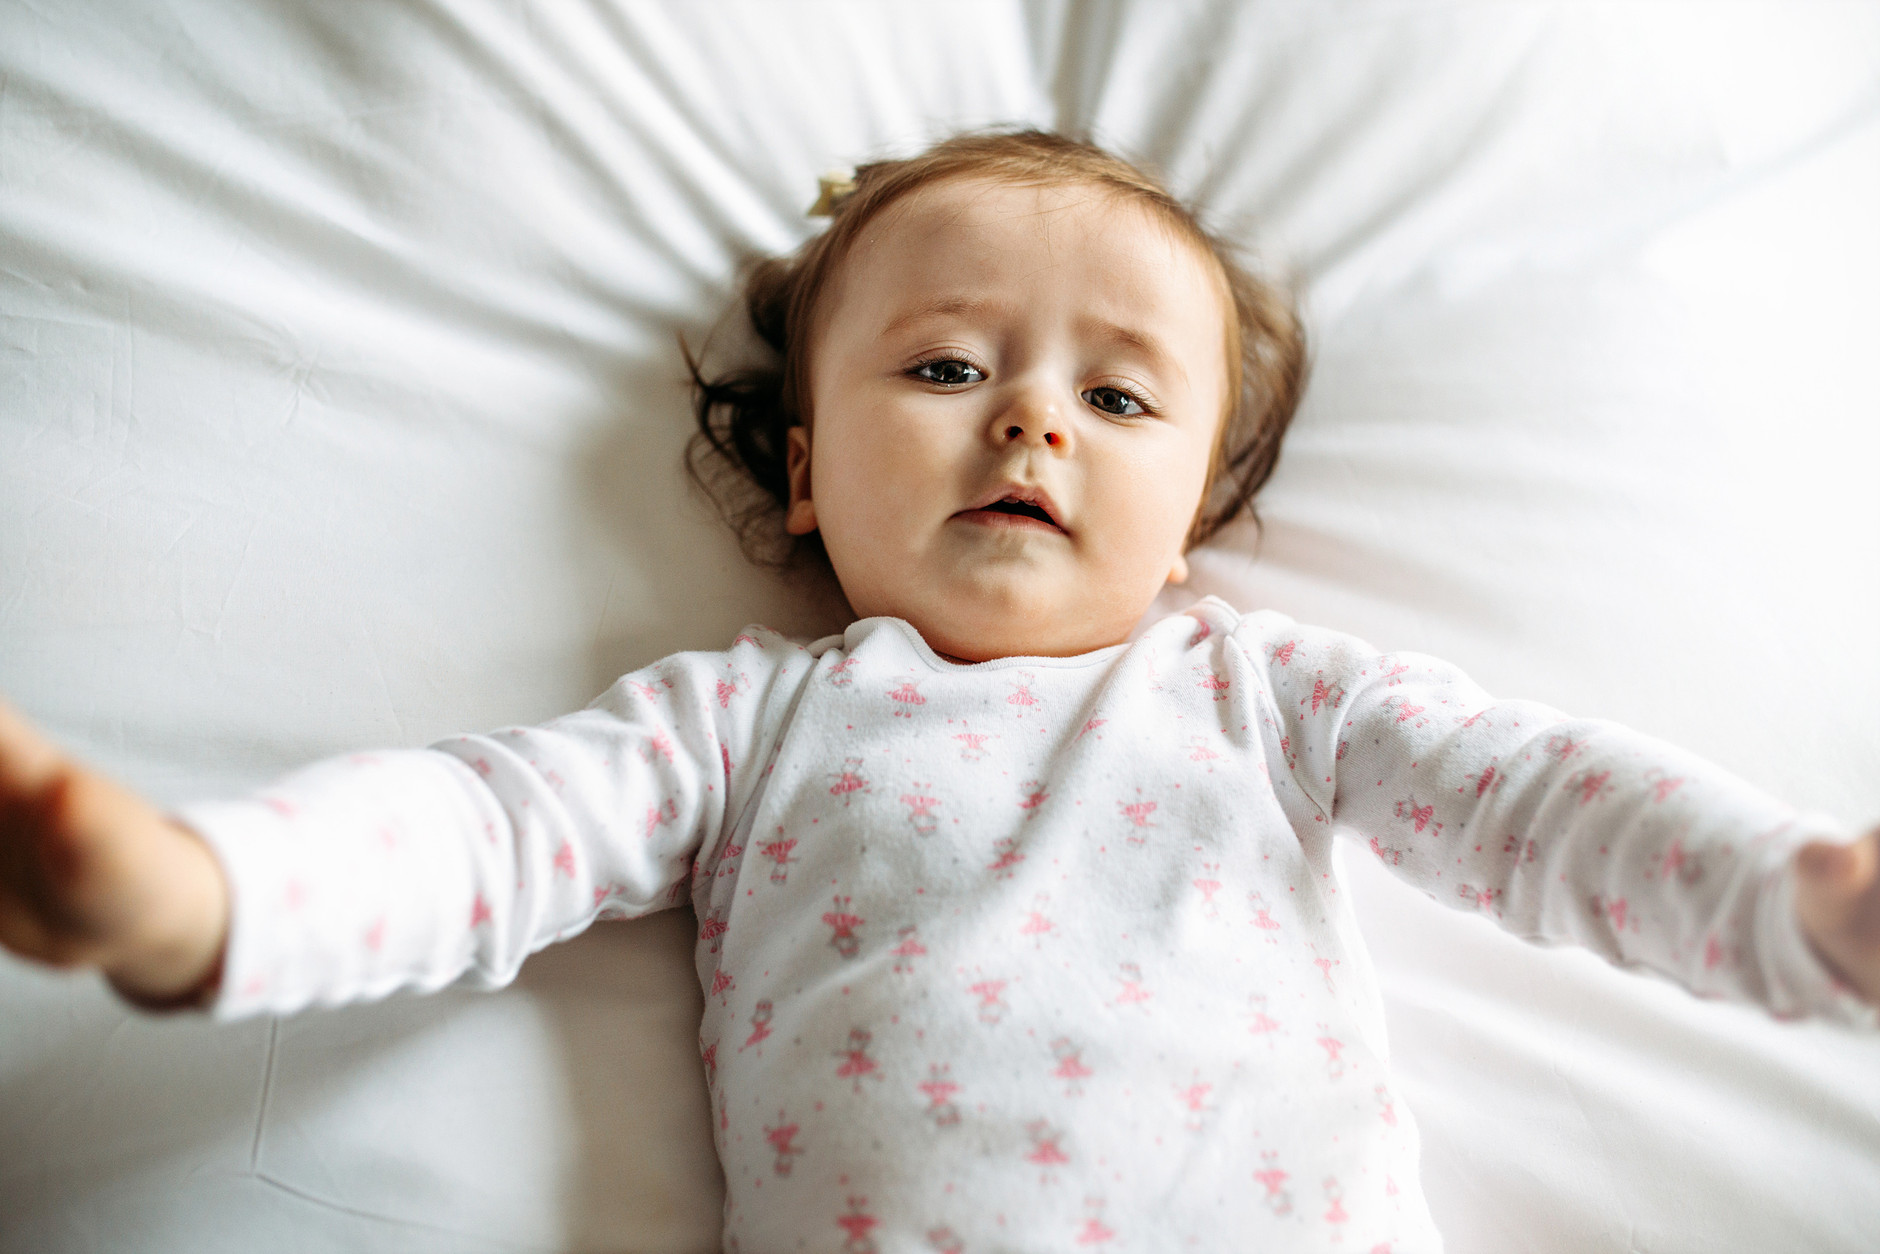 One-Year-Old baby lying on a bed and looking at the camera